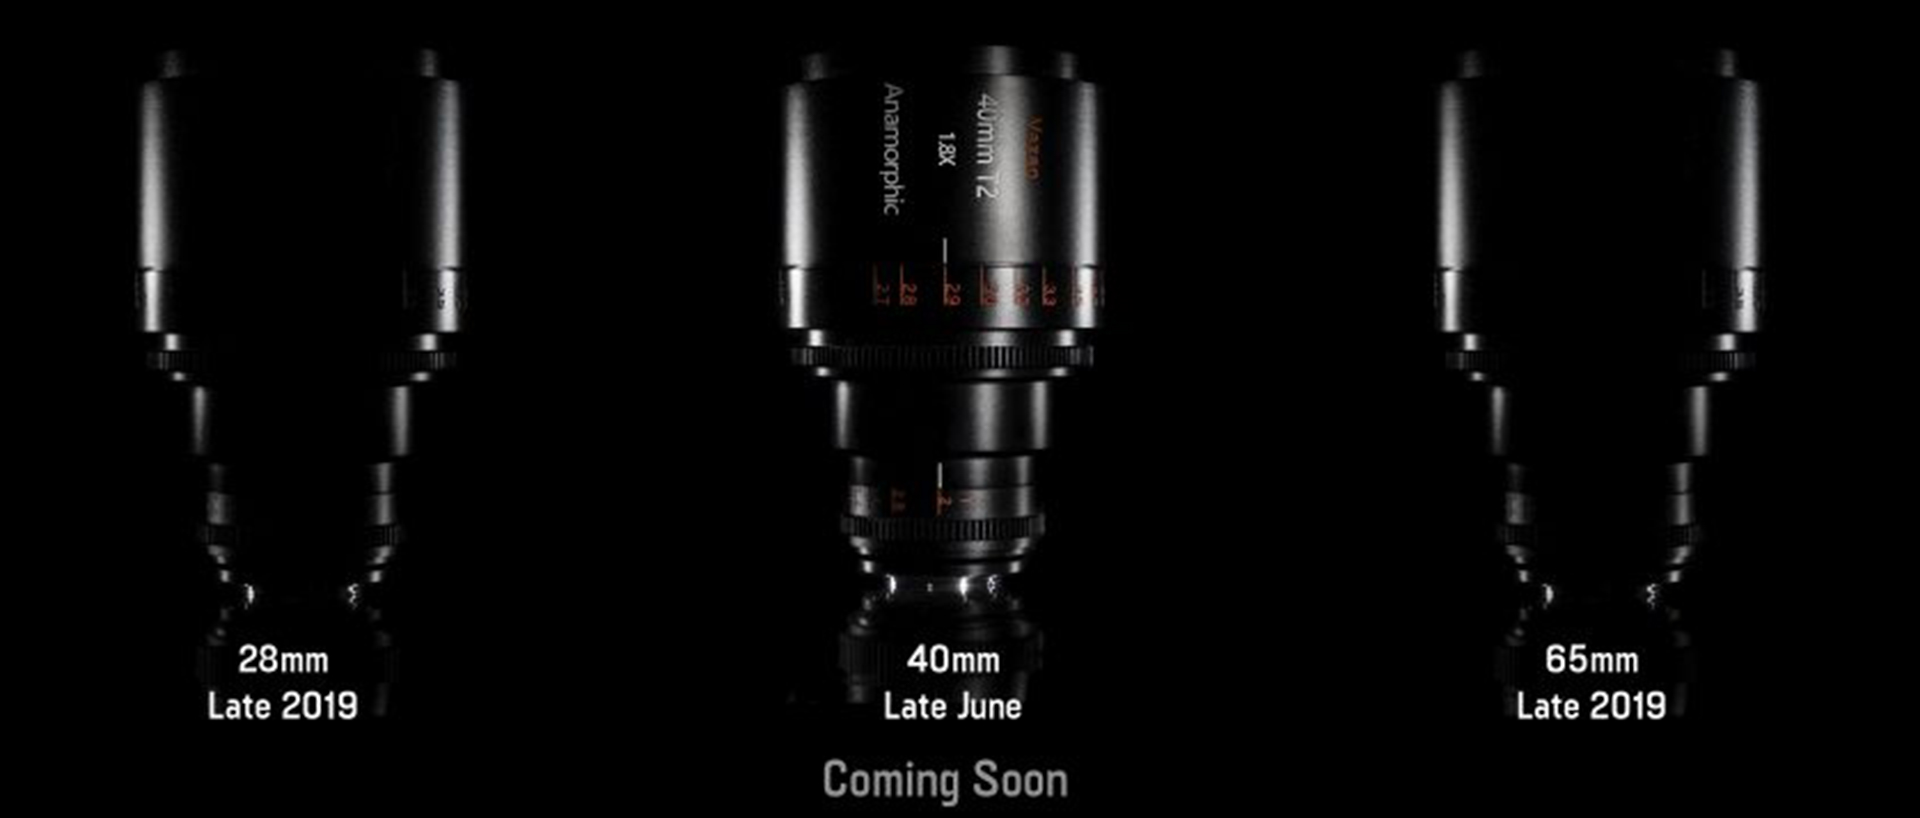 Vazen 1 8x Anamorphic – 3 New Lenses for Micro Four Thirds